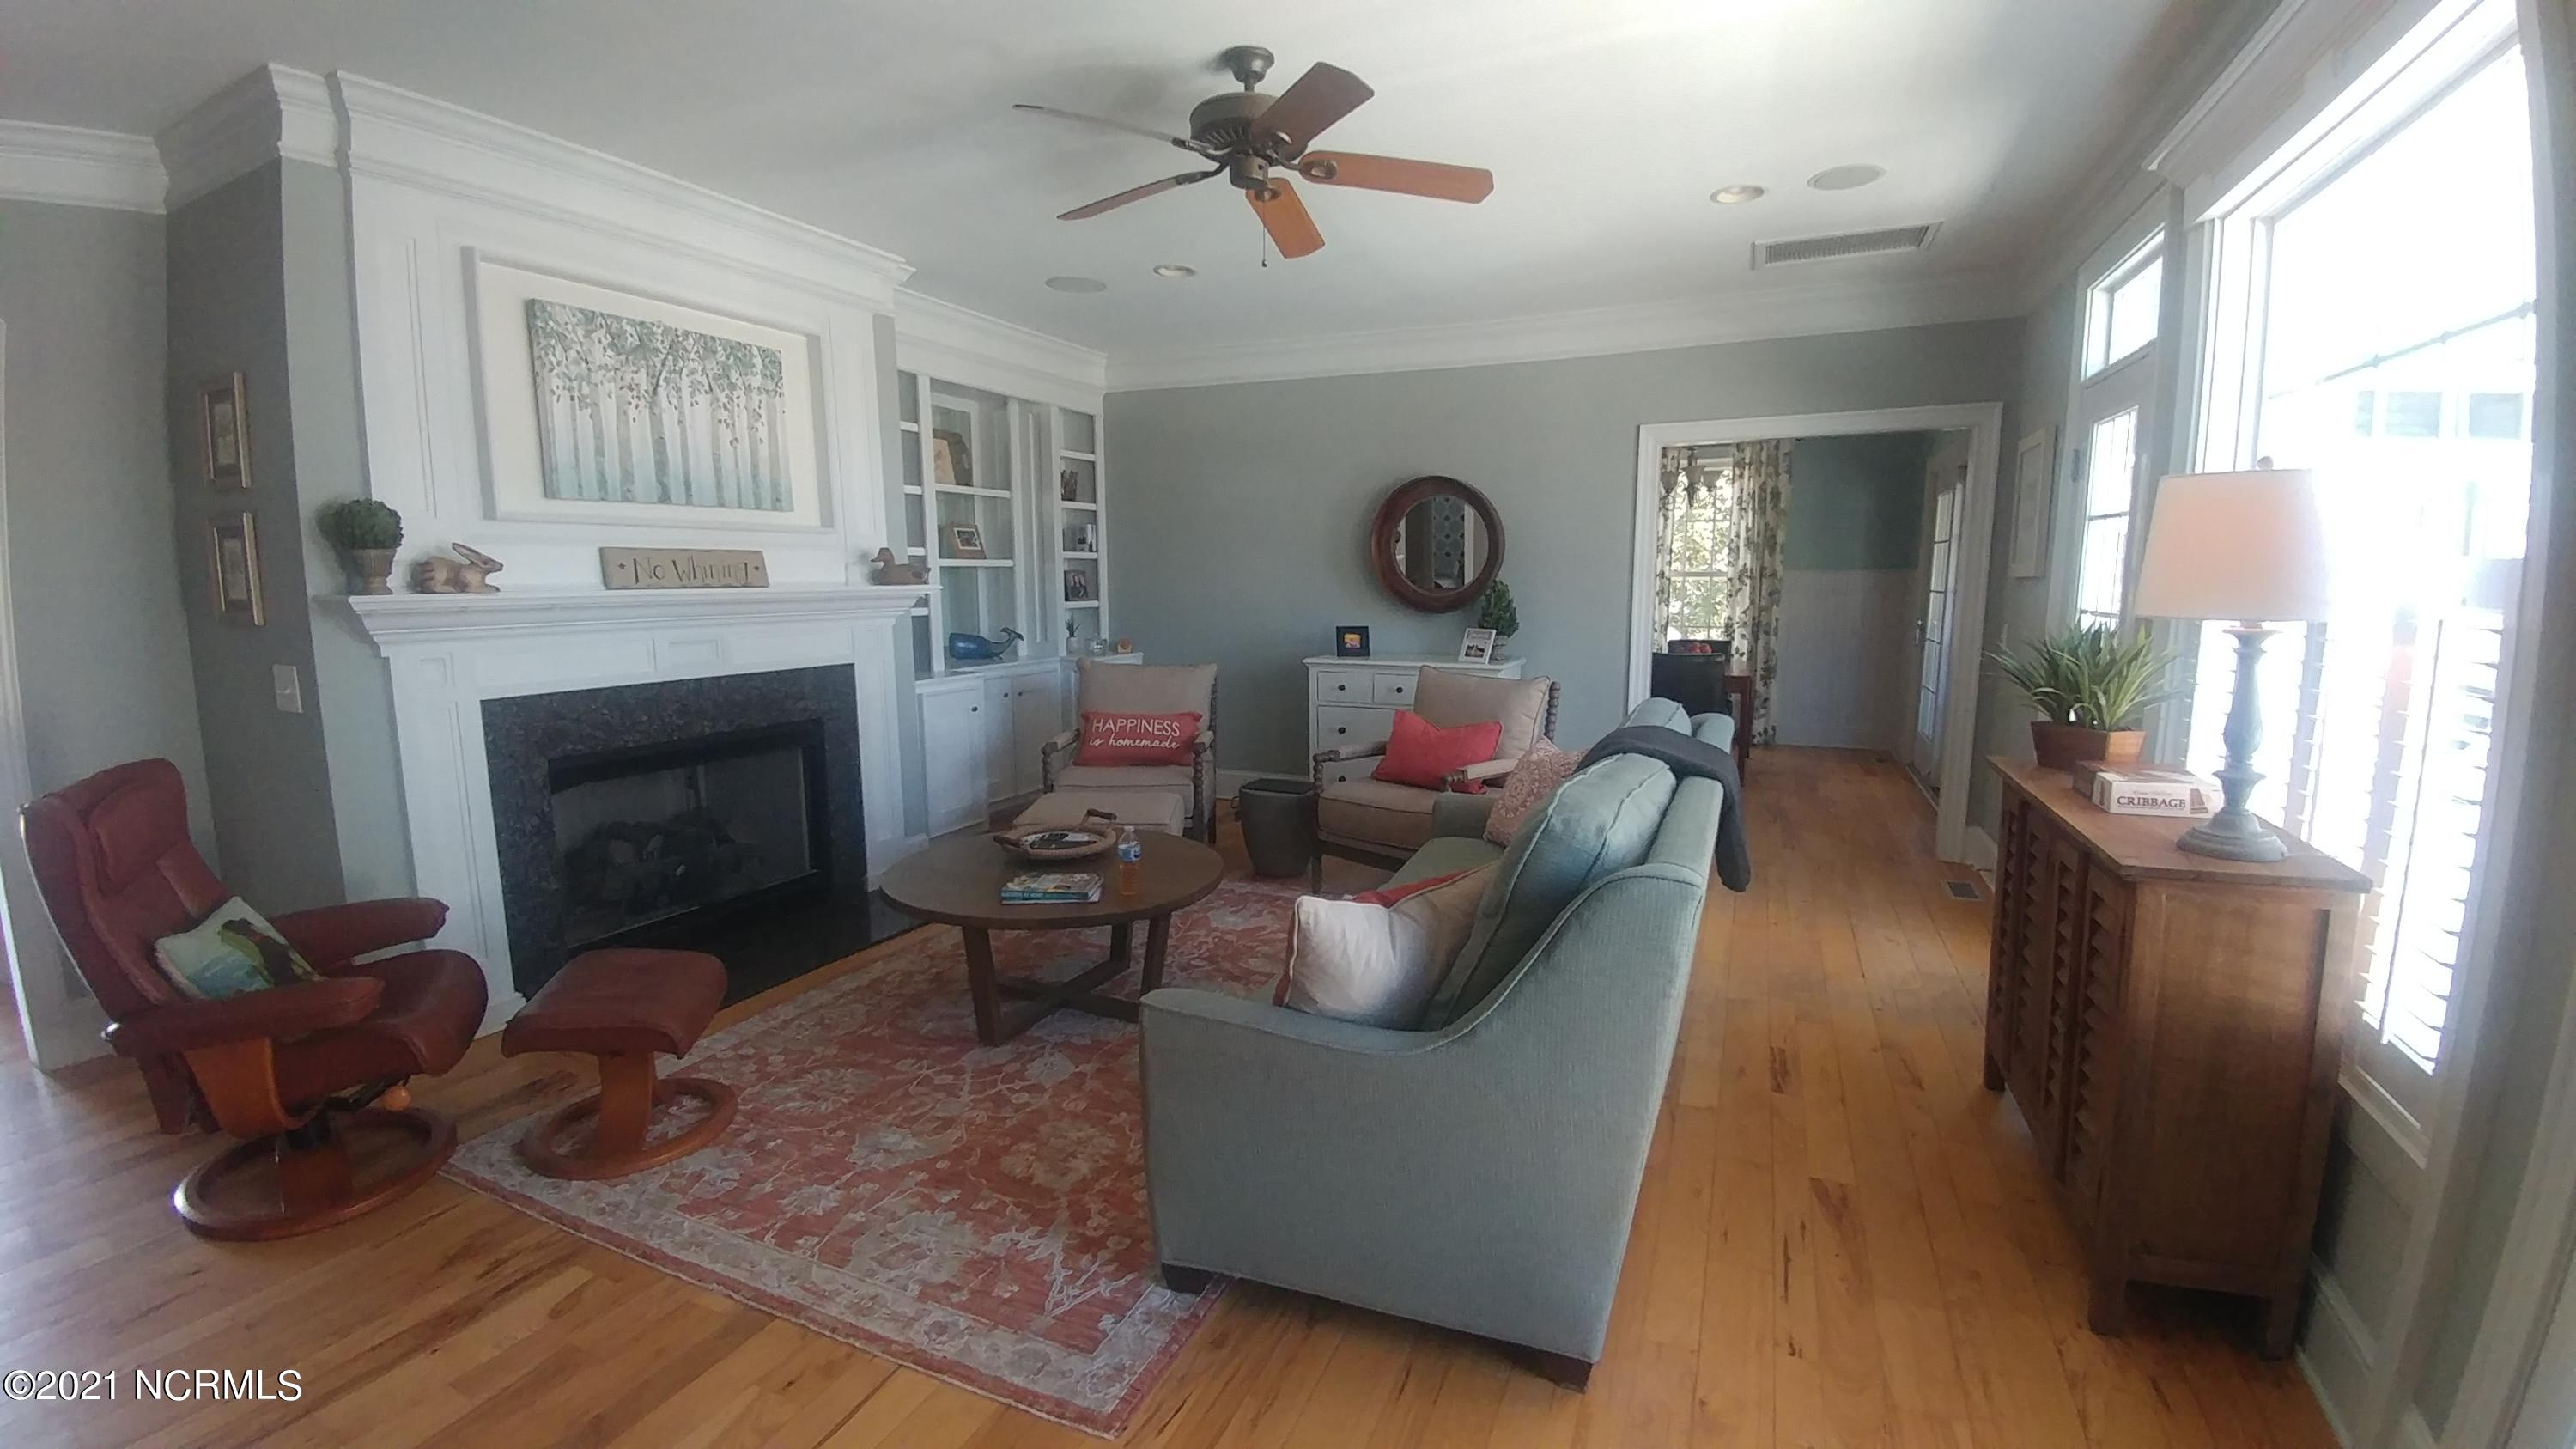 10248 Mariners Cove Court, Belville, North Carolina 28451, 4 Bedrooms Bedrooms, 10 Rooms Rooms,3 BathroomsBathrooms,Single family residence,For sale,Mariners Cove,100264408